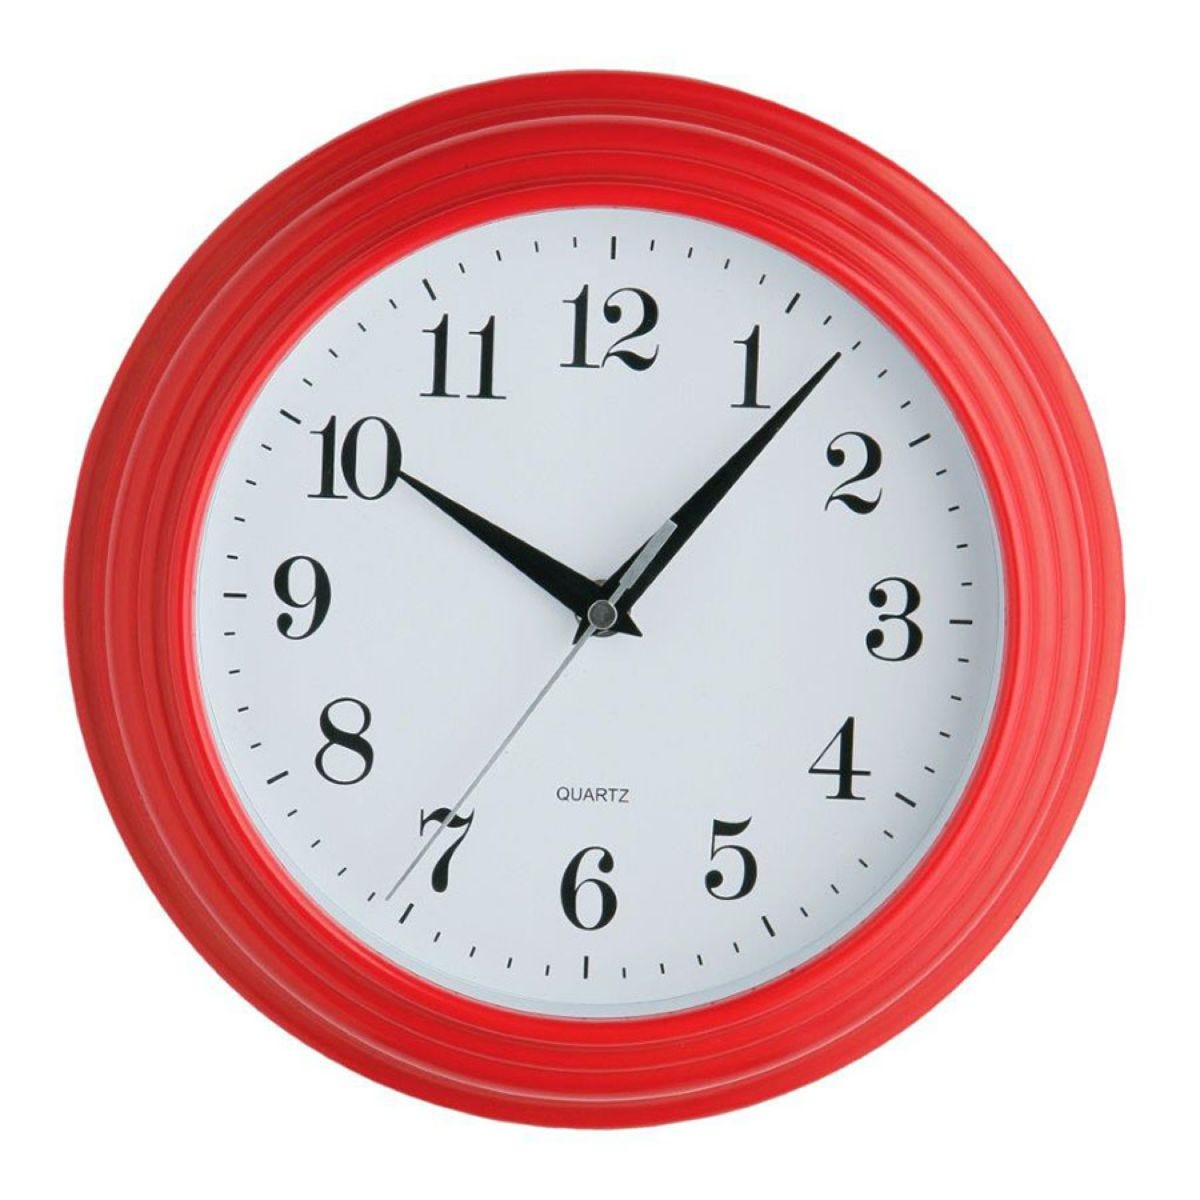 Vintage Plastic Wall Clock - Red